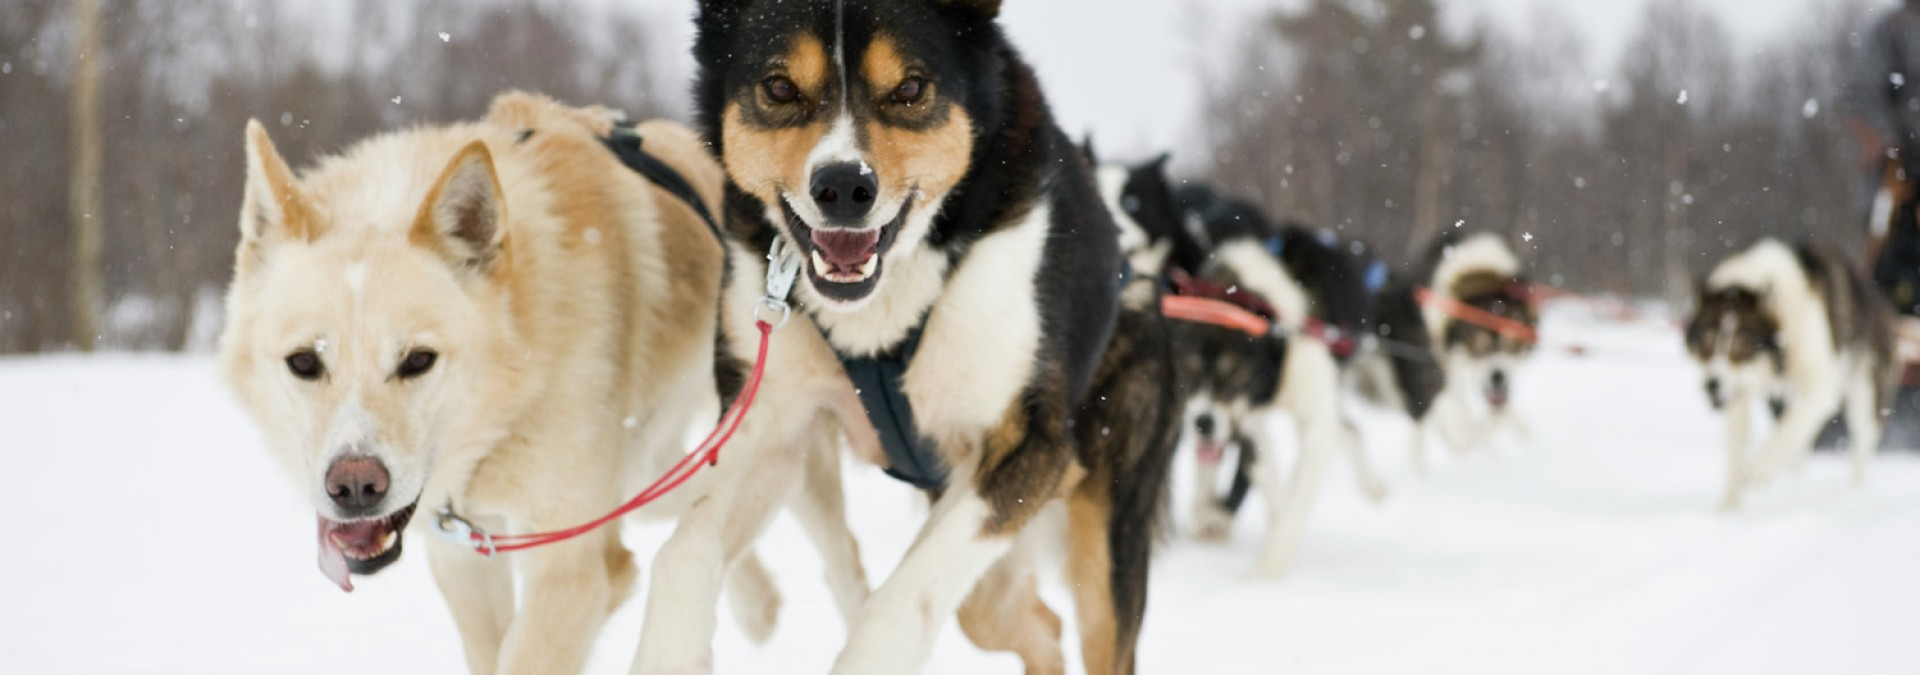 Huskies Terje RakkeNordic Life - Credit Visitnorway.com & Innovation Norway